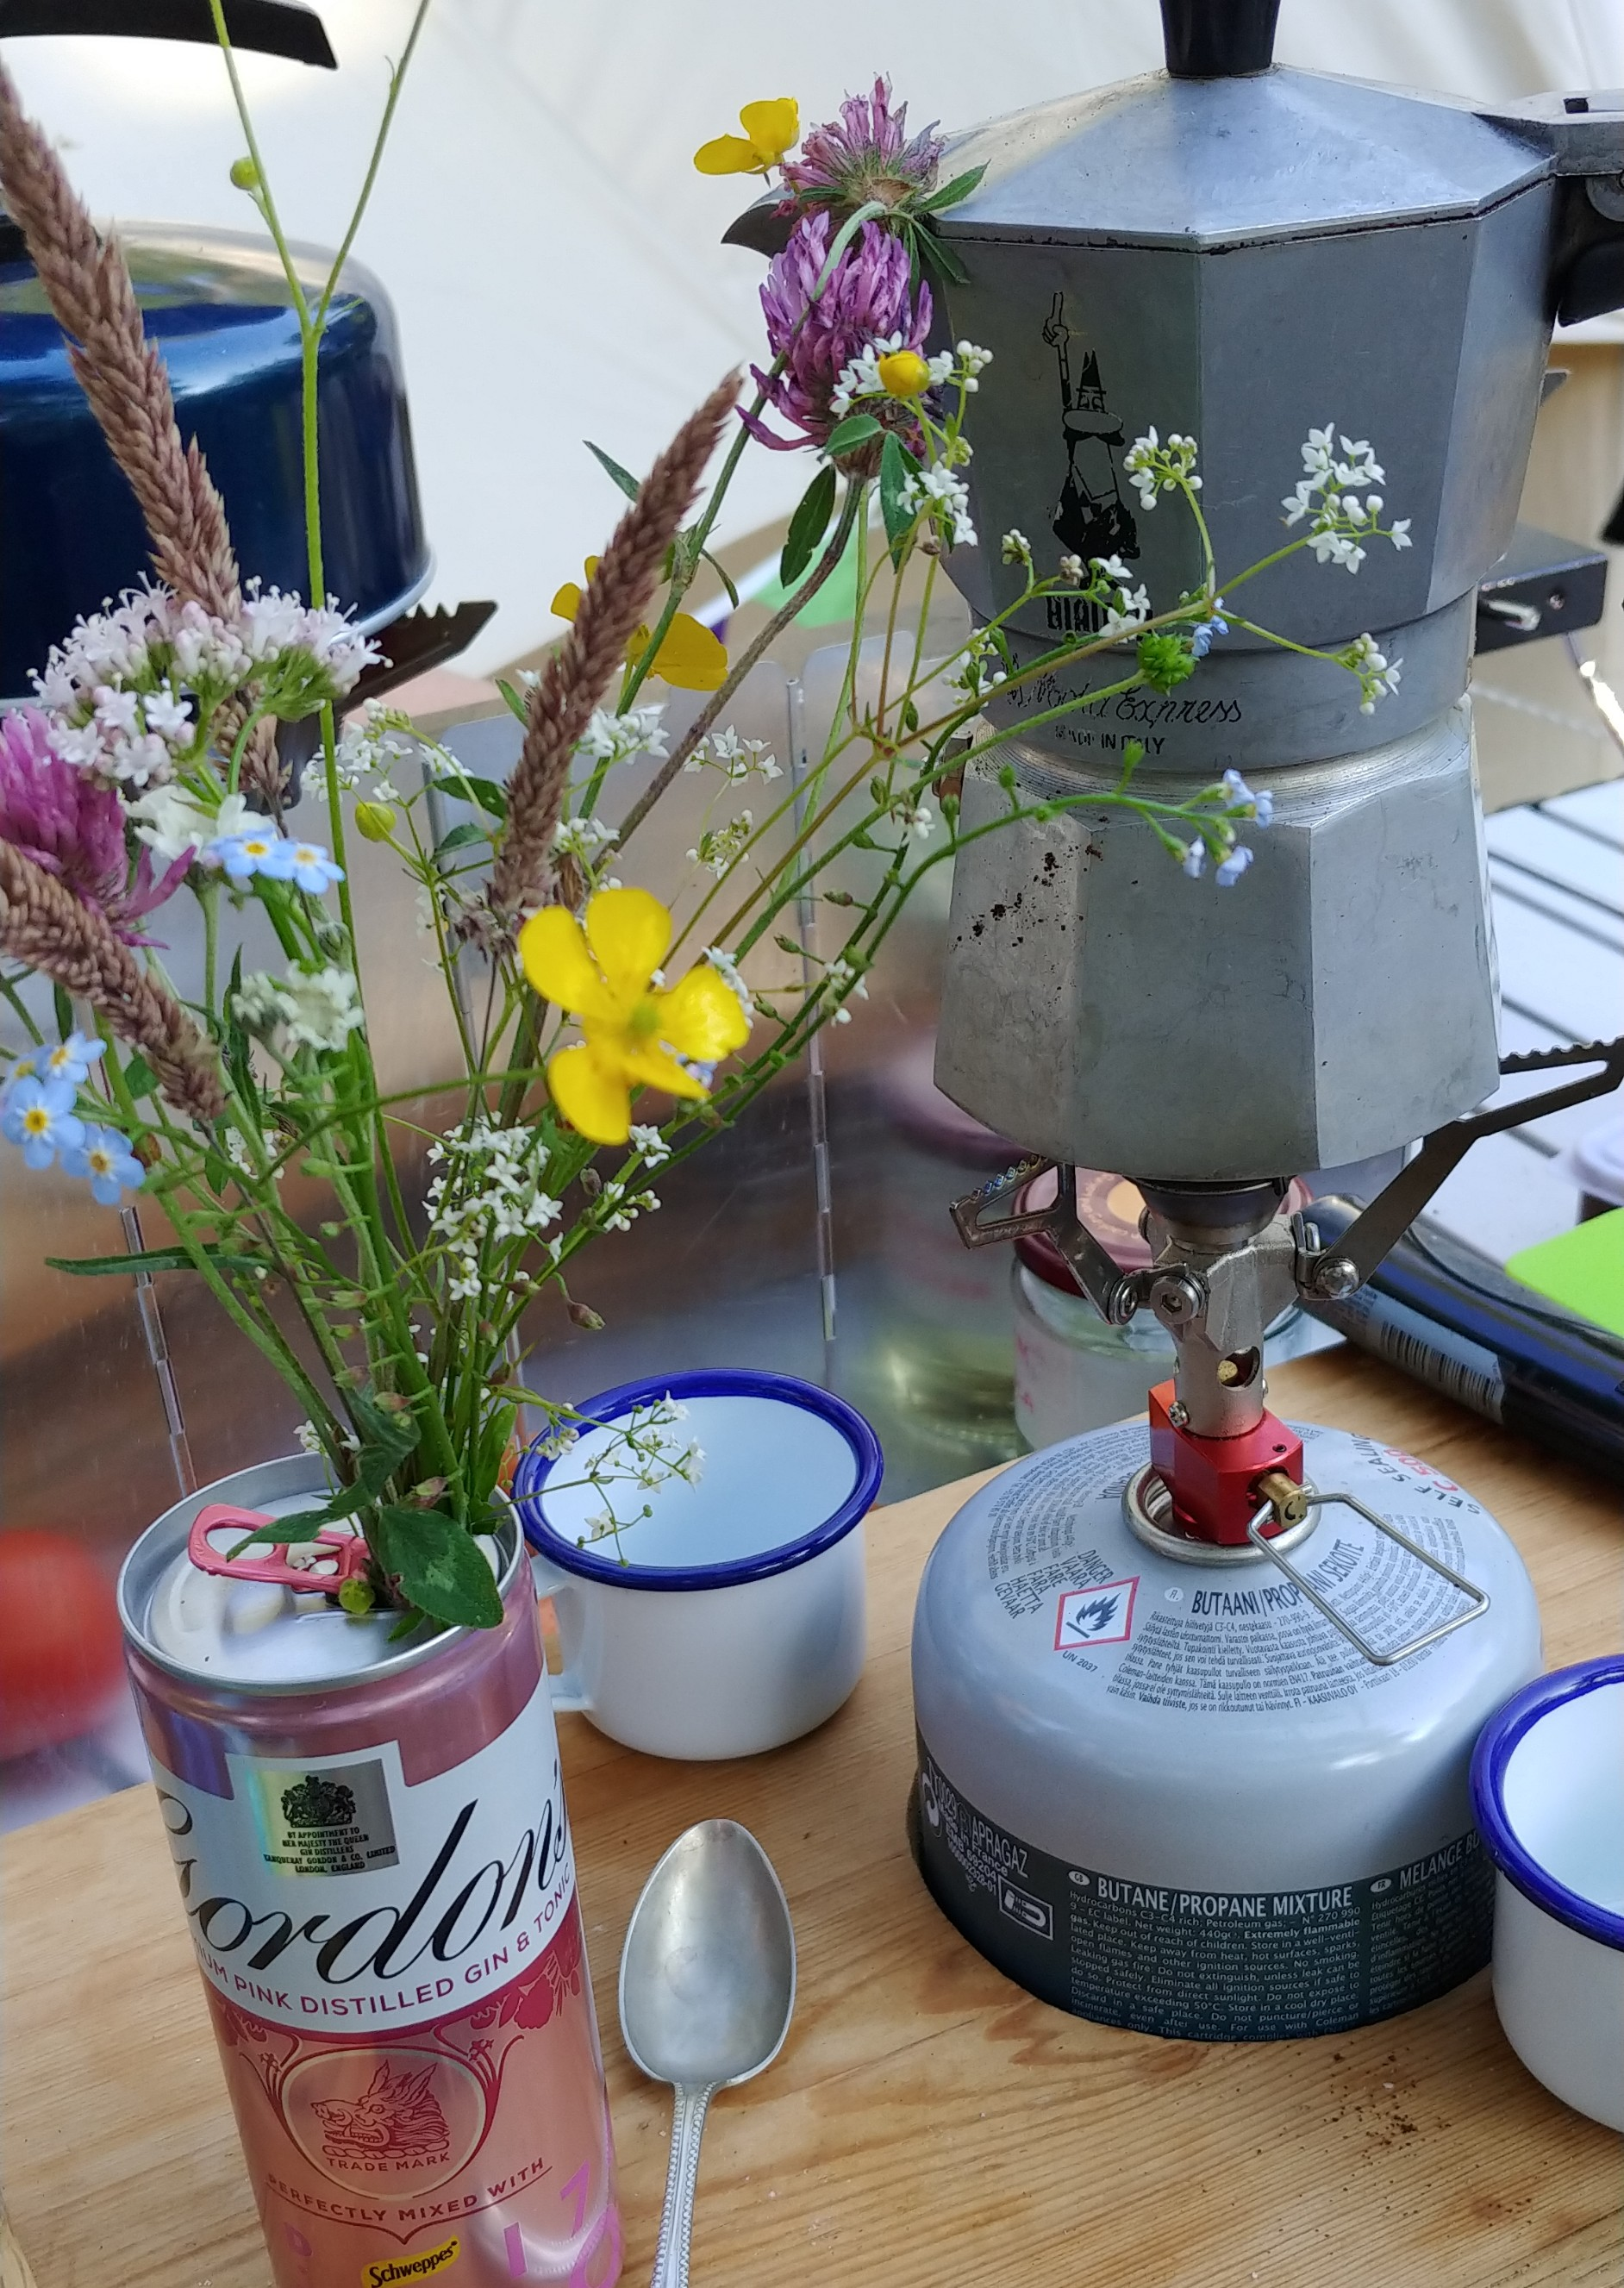 Camping kitchen style - wildflowers in a gin tin, antique tea spoons, our little pocket rocket, a Moka pot, and enamel espresso cups.